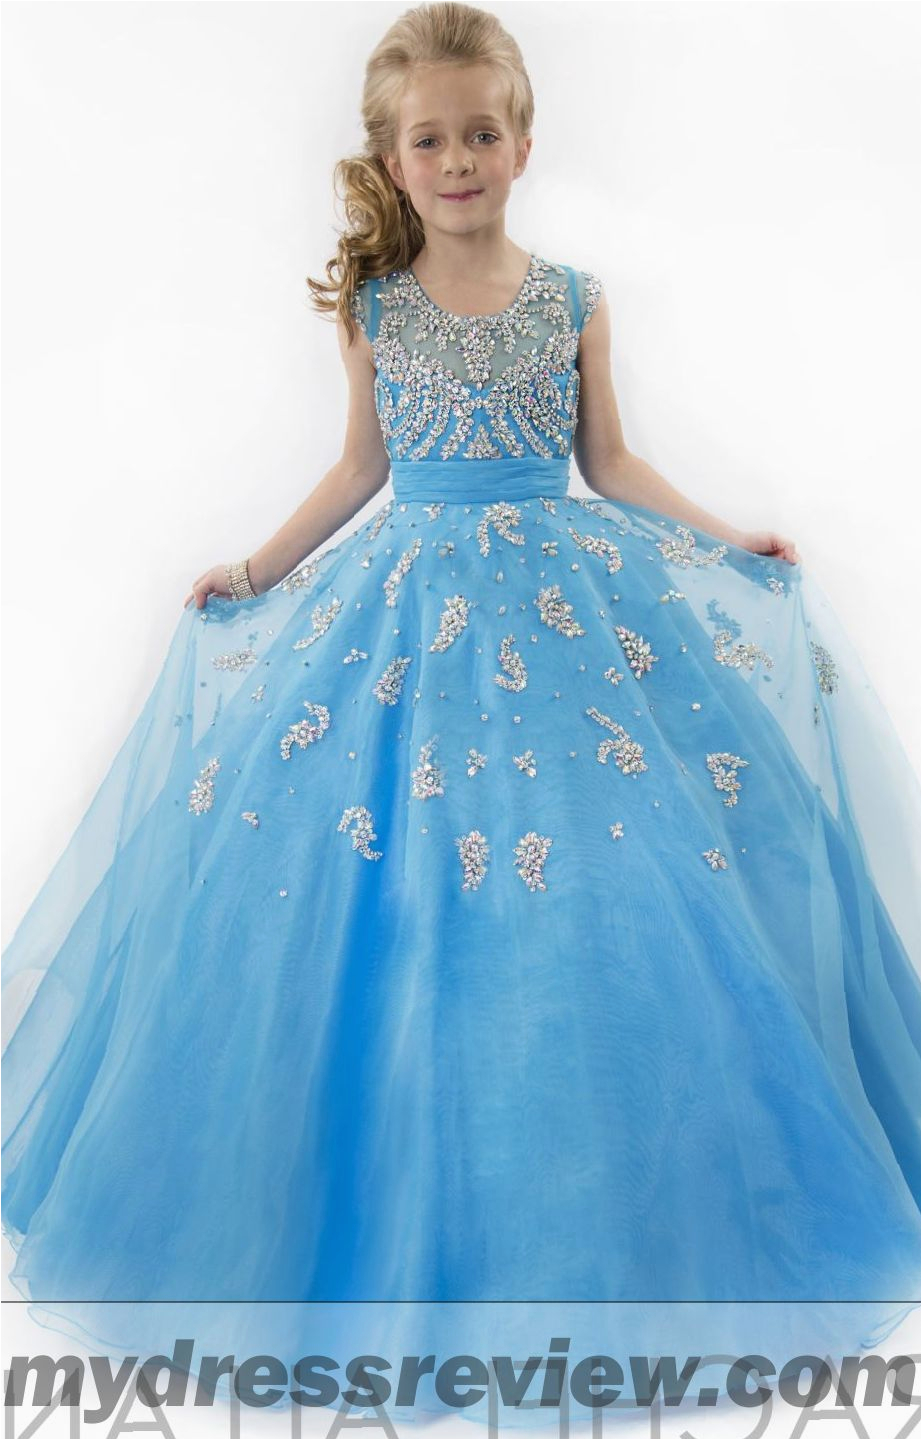 party dress for 1 year old review 2017 mydressreview